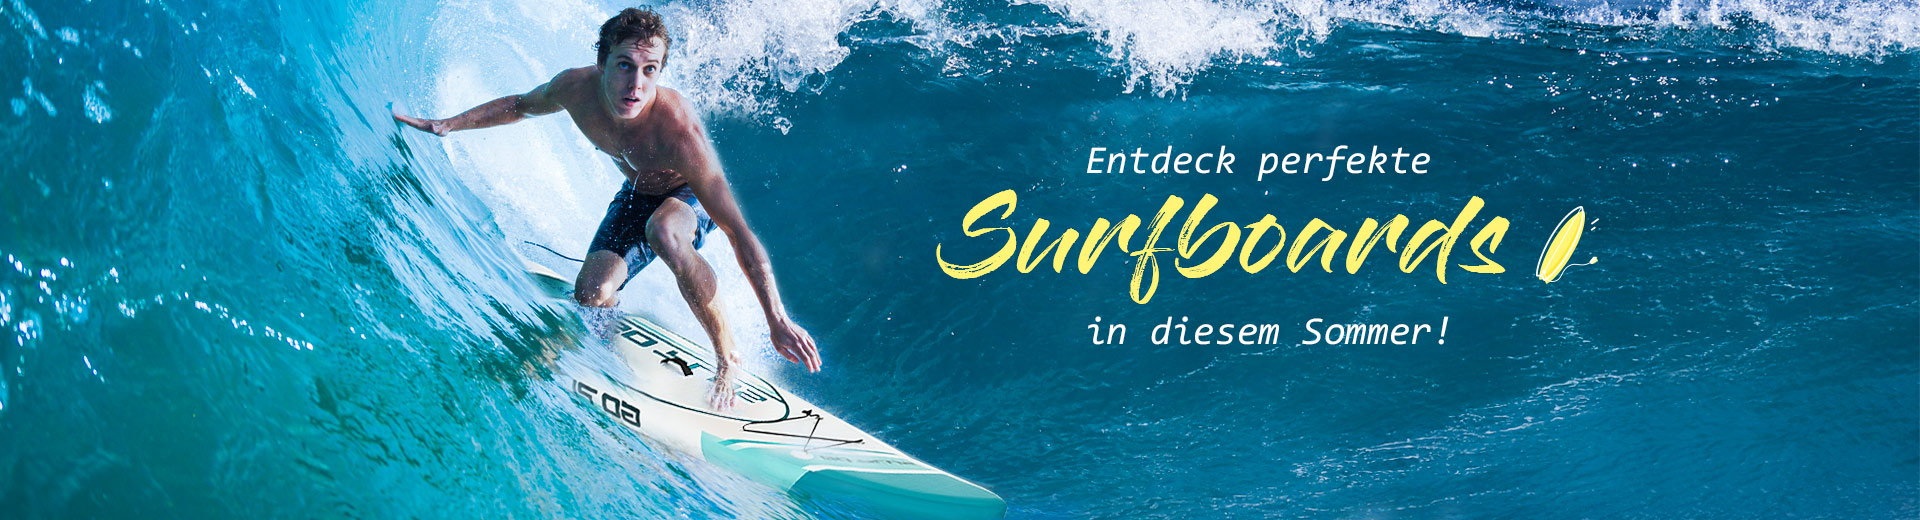 Costway DE Surfboard Sale